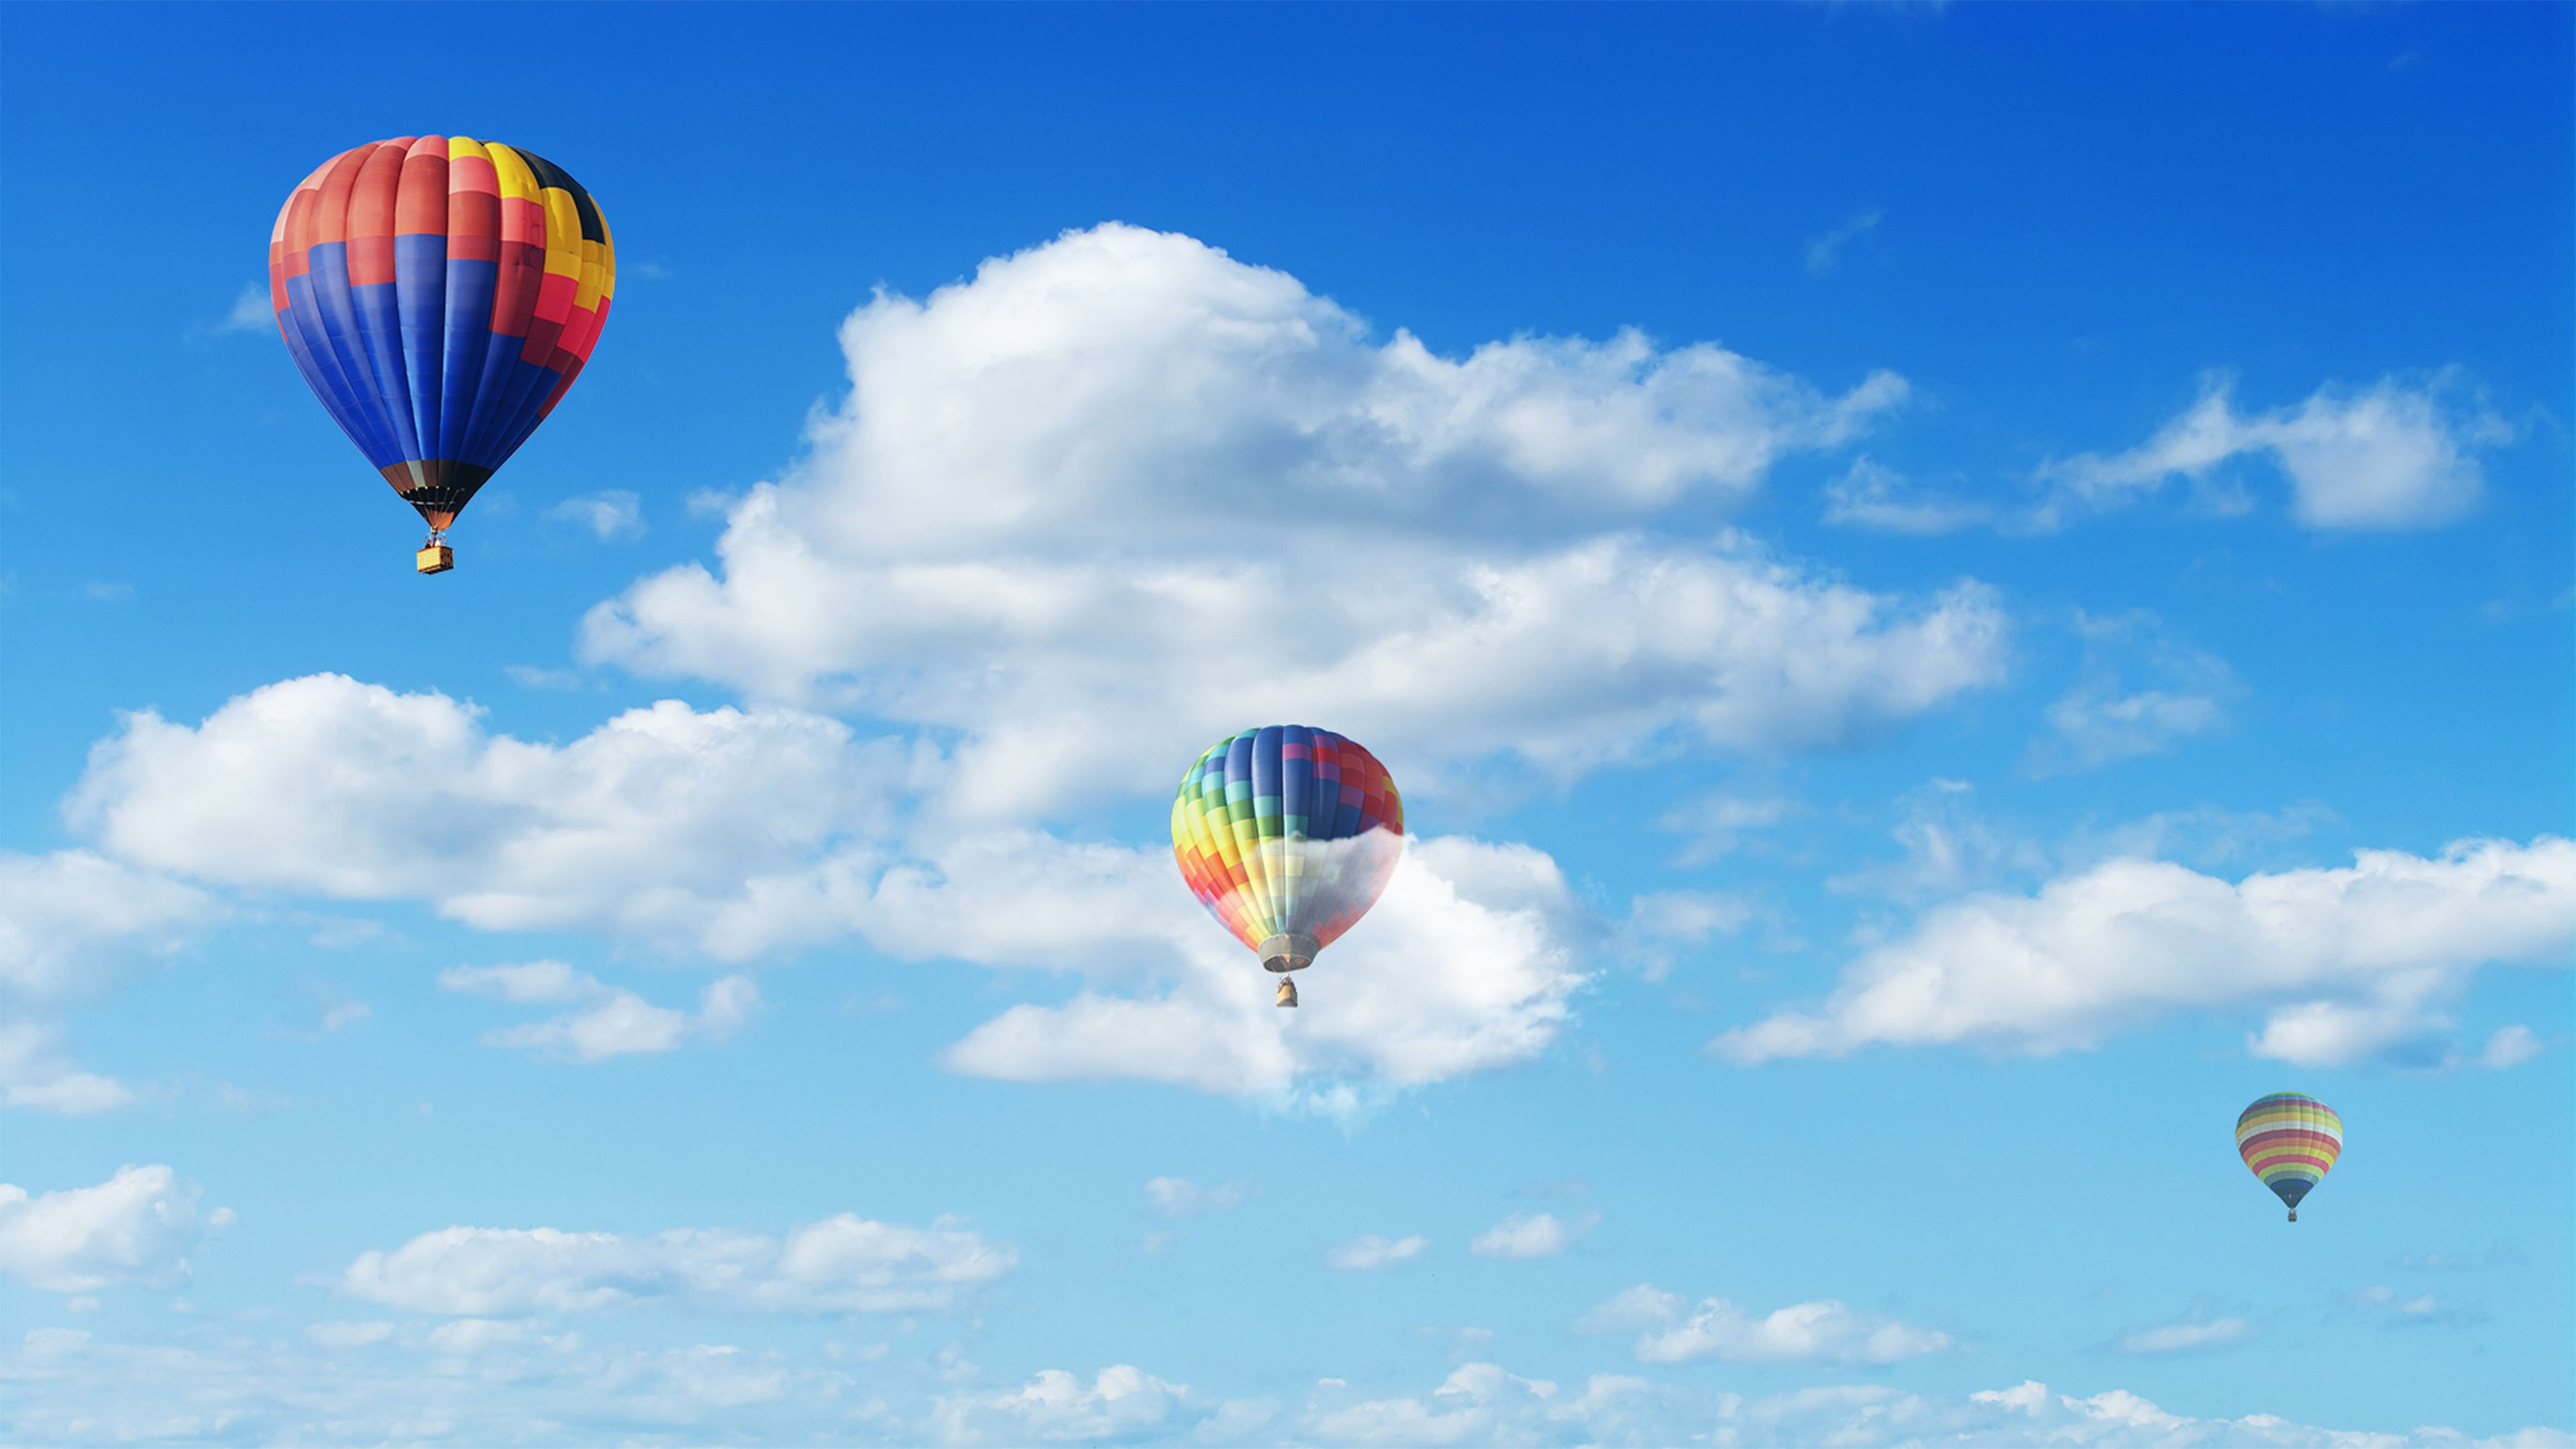 4K Balloon Wallpapers - Top Free 4K Balloon Backgrounds ...